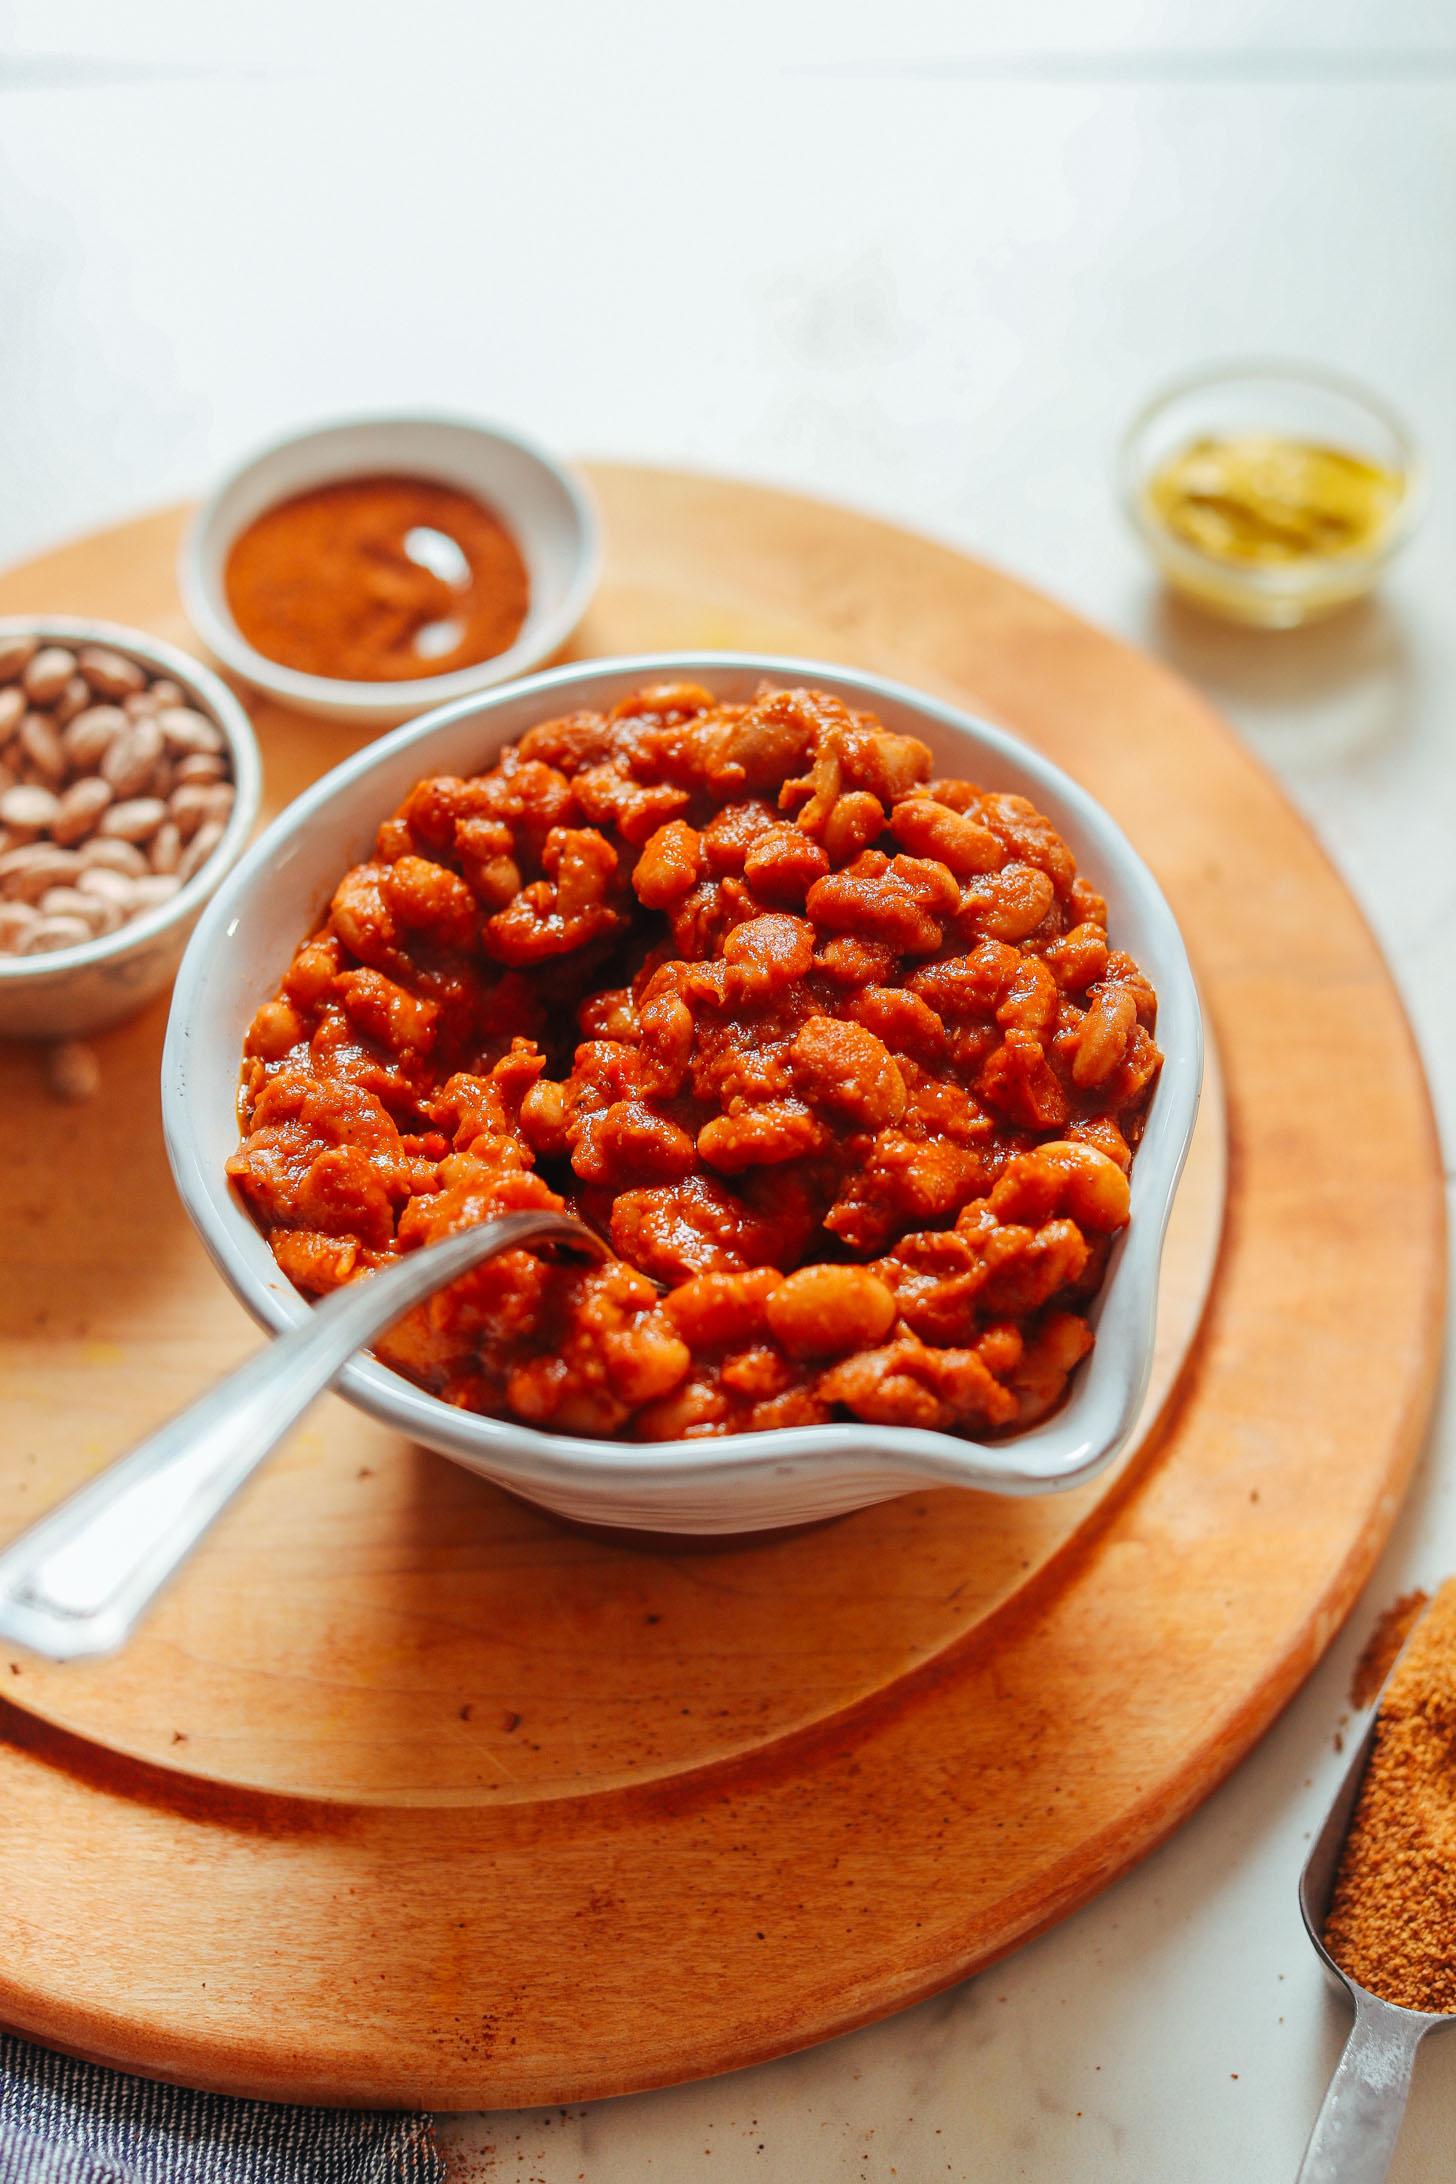 Grabbing a spoonful of vegan gluten-free BBQ Baked Beans